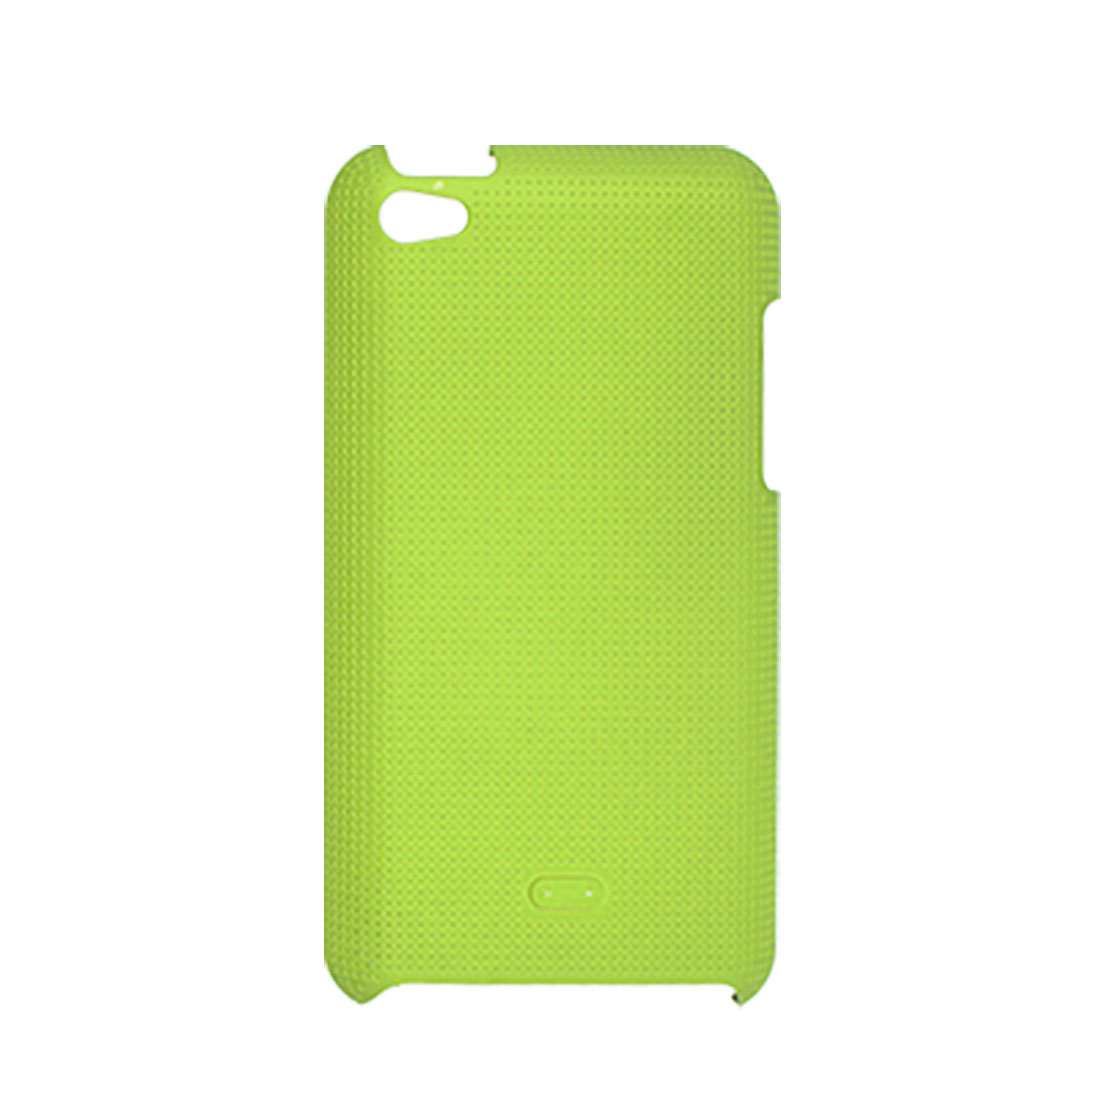 Nonslip Back Case Protector Green for iPod Touch 4G